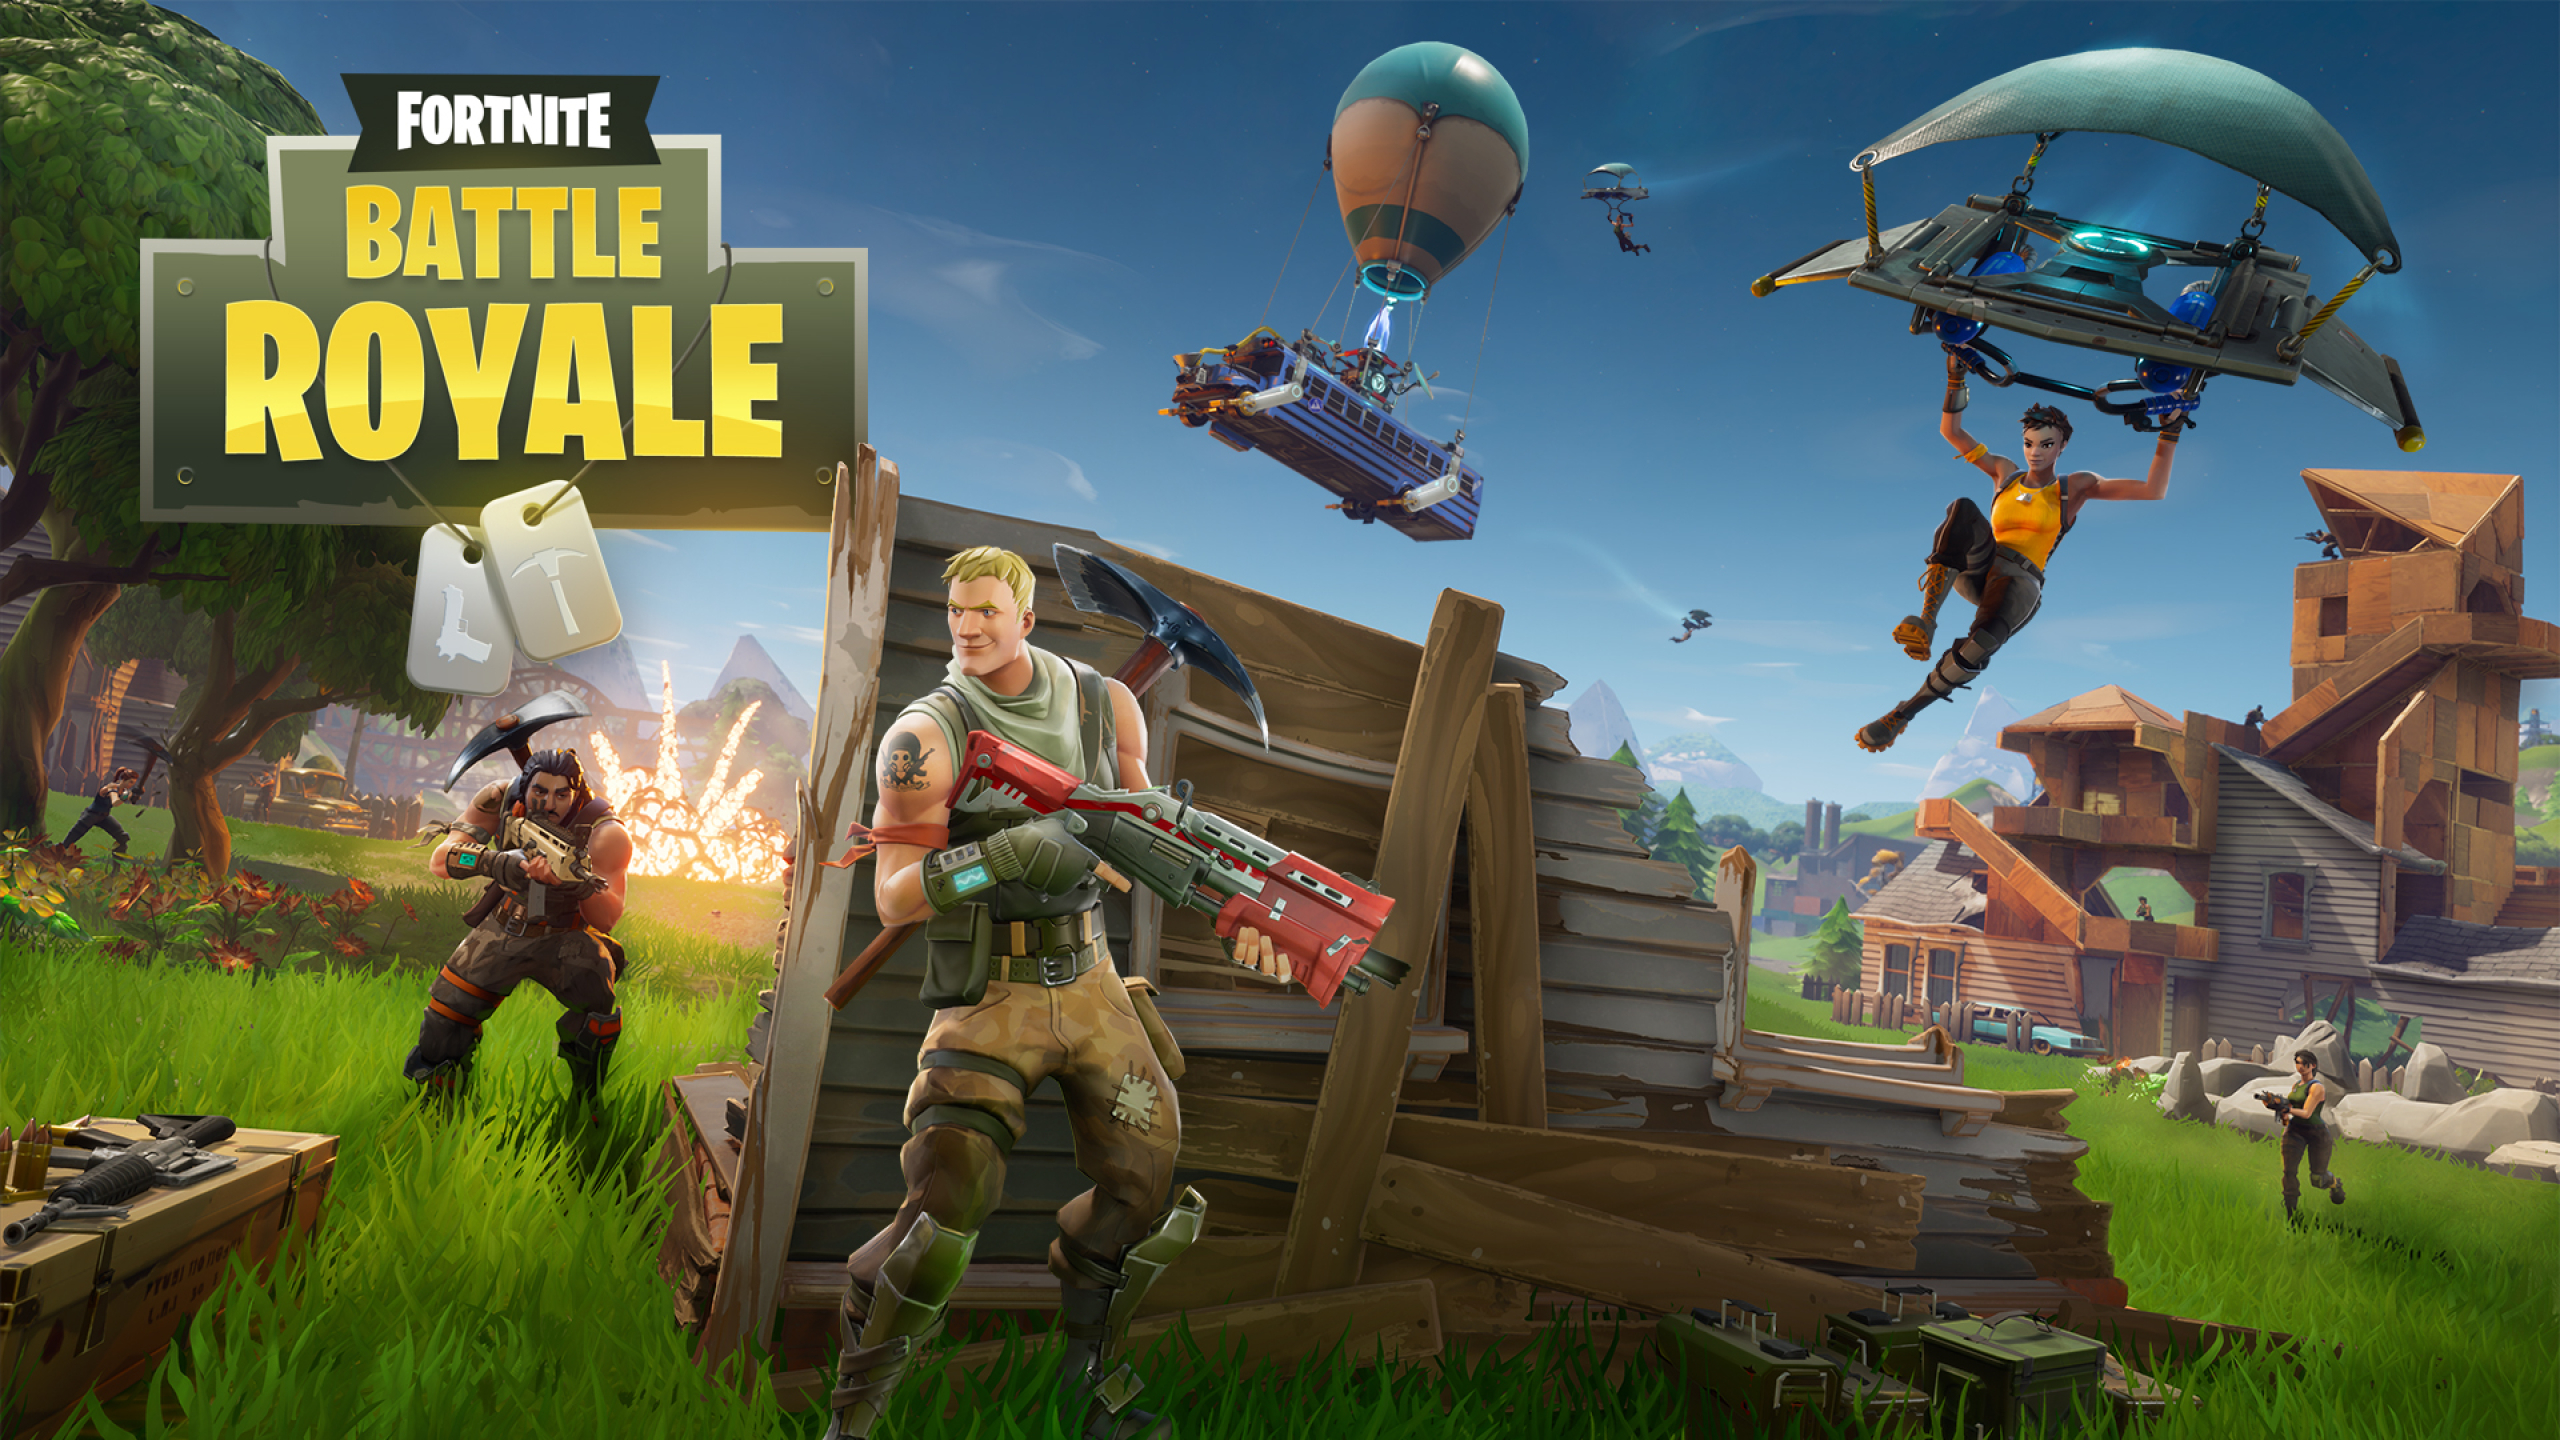 2560x1440 Fortnite Battle Royale 1440p Resolution Wallpaper